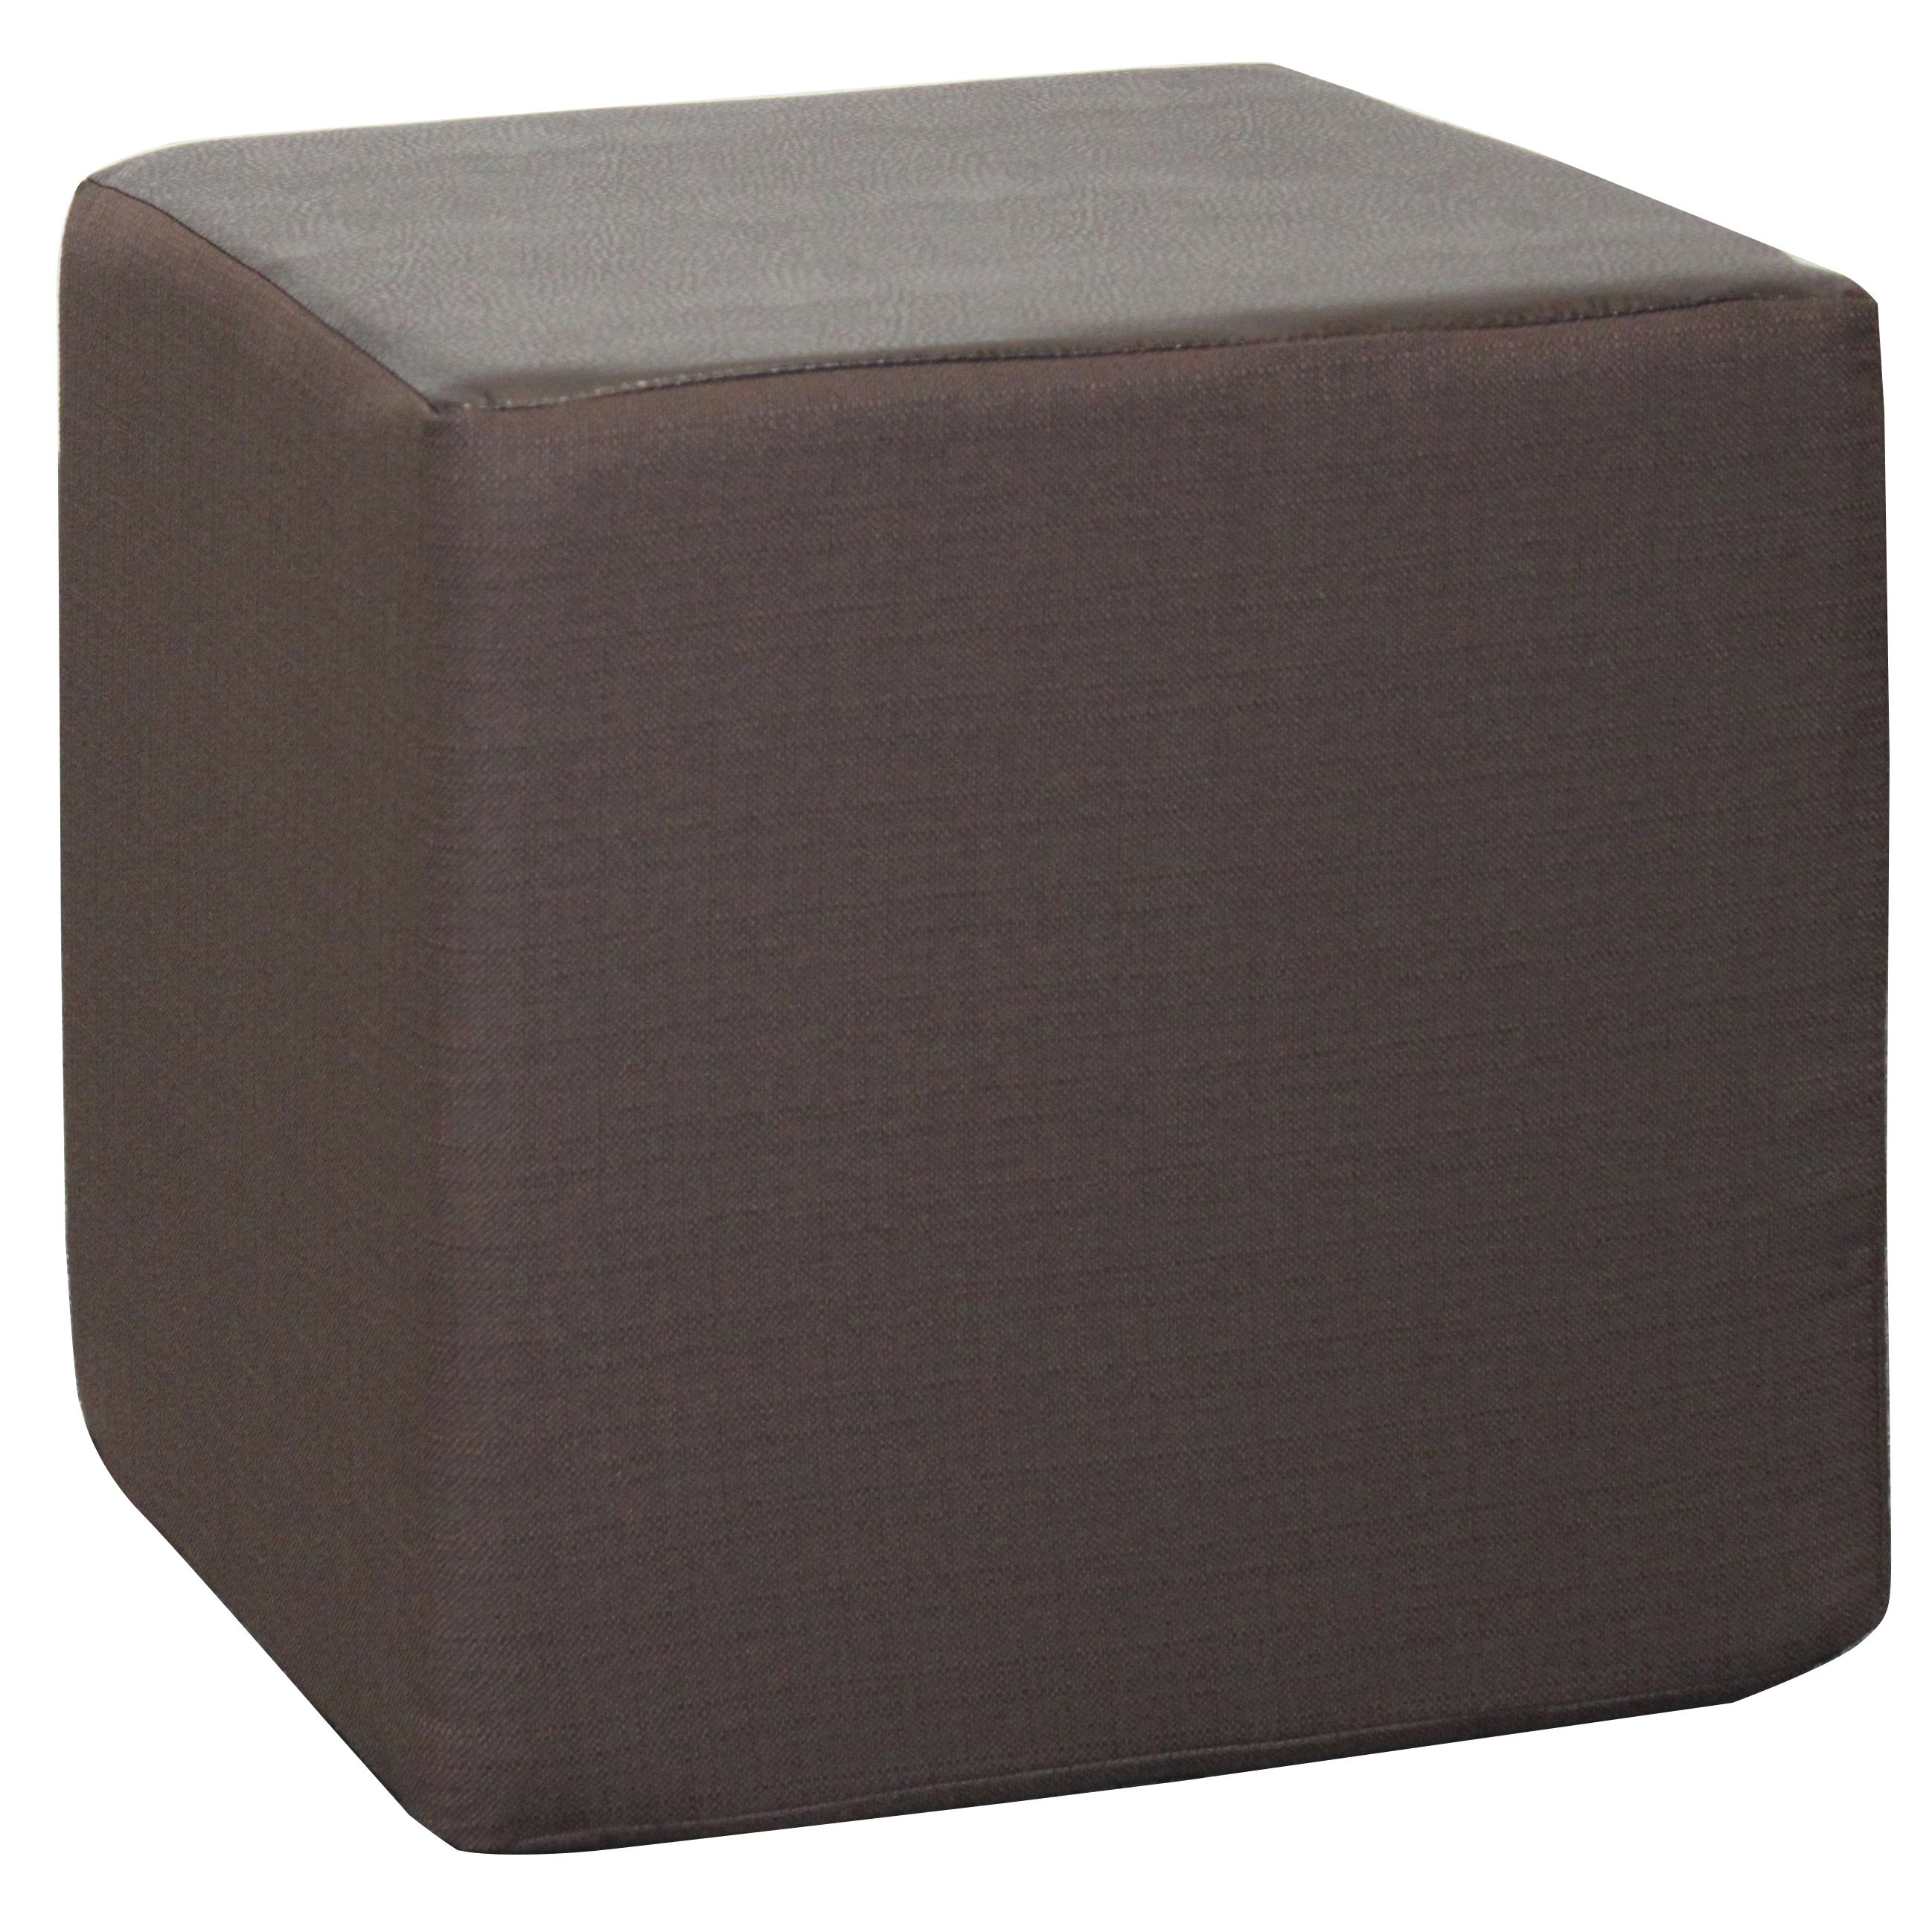 Big Tree Furniture Koala Foam Clyde Espresso 15 Inch Cube